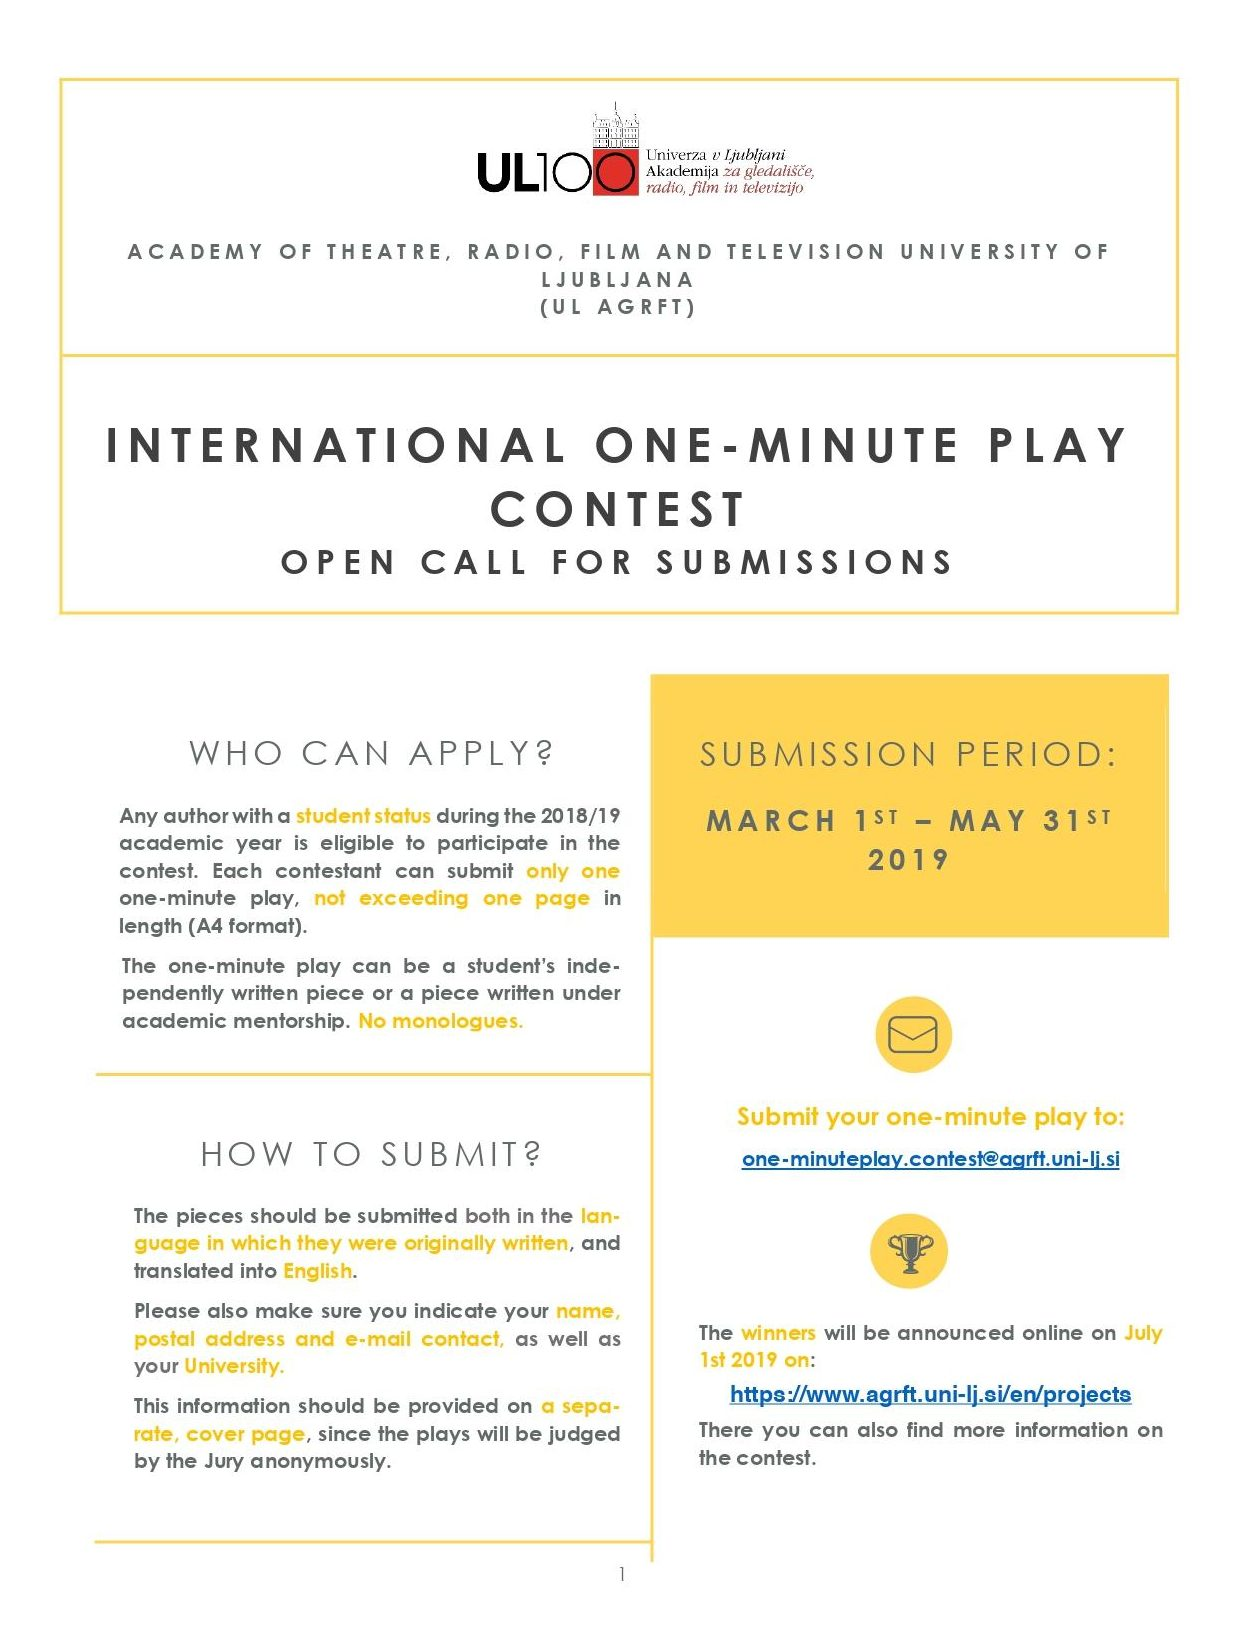 INTERNATIONAL ONE-MINUTE PLAY CONTEST - OPEN CALL FOR SUBMISSIONS